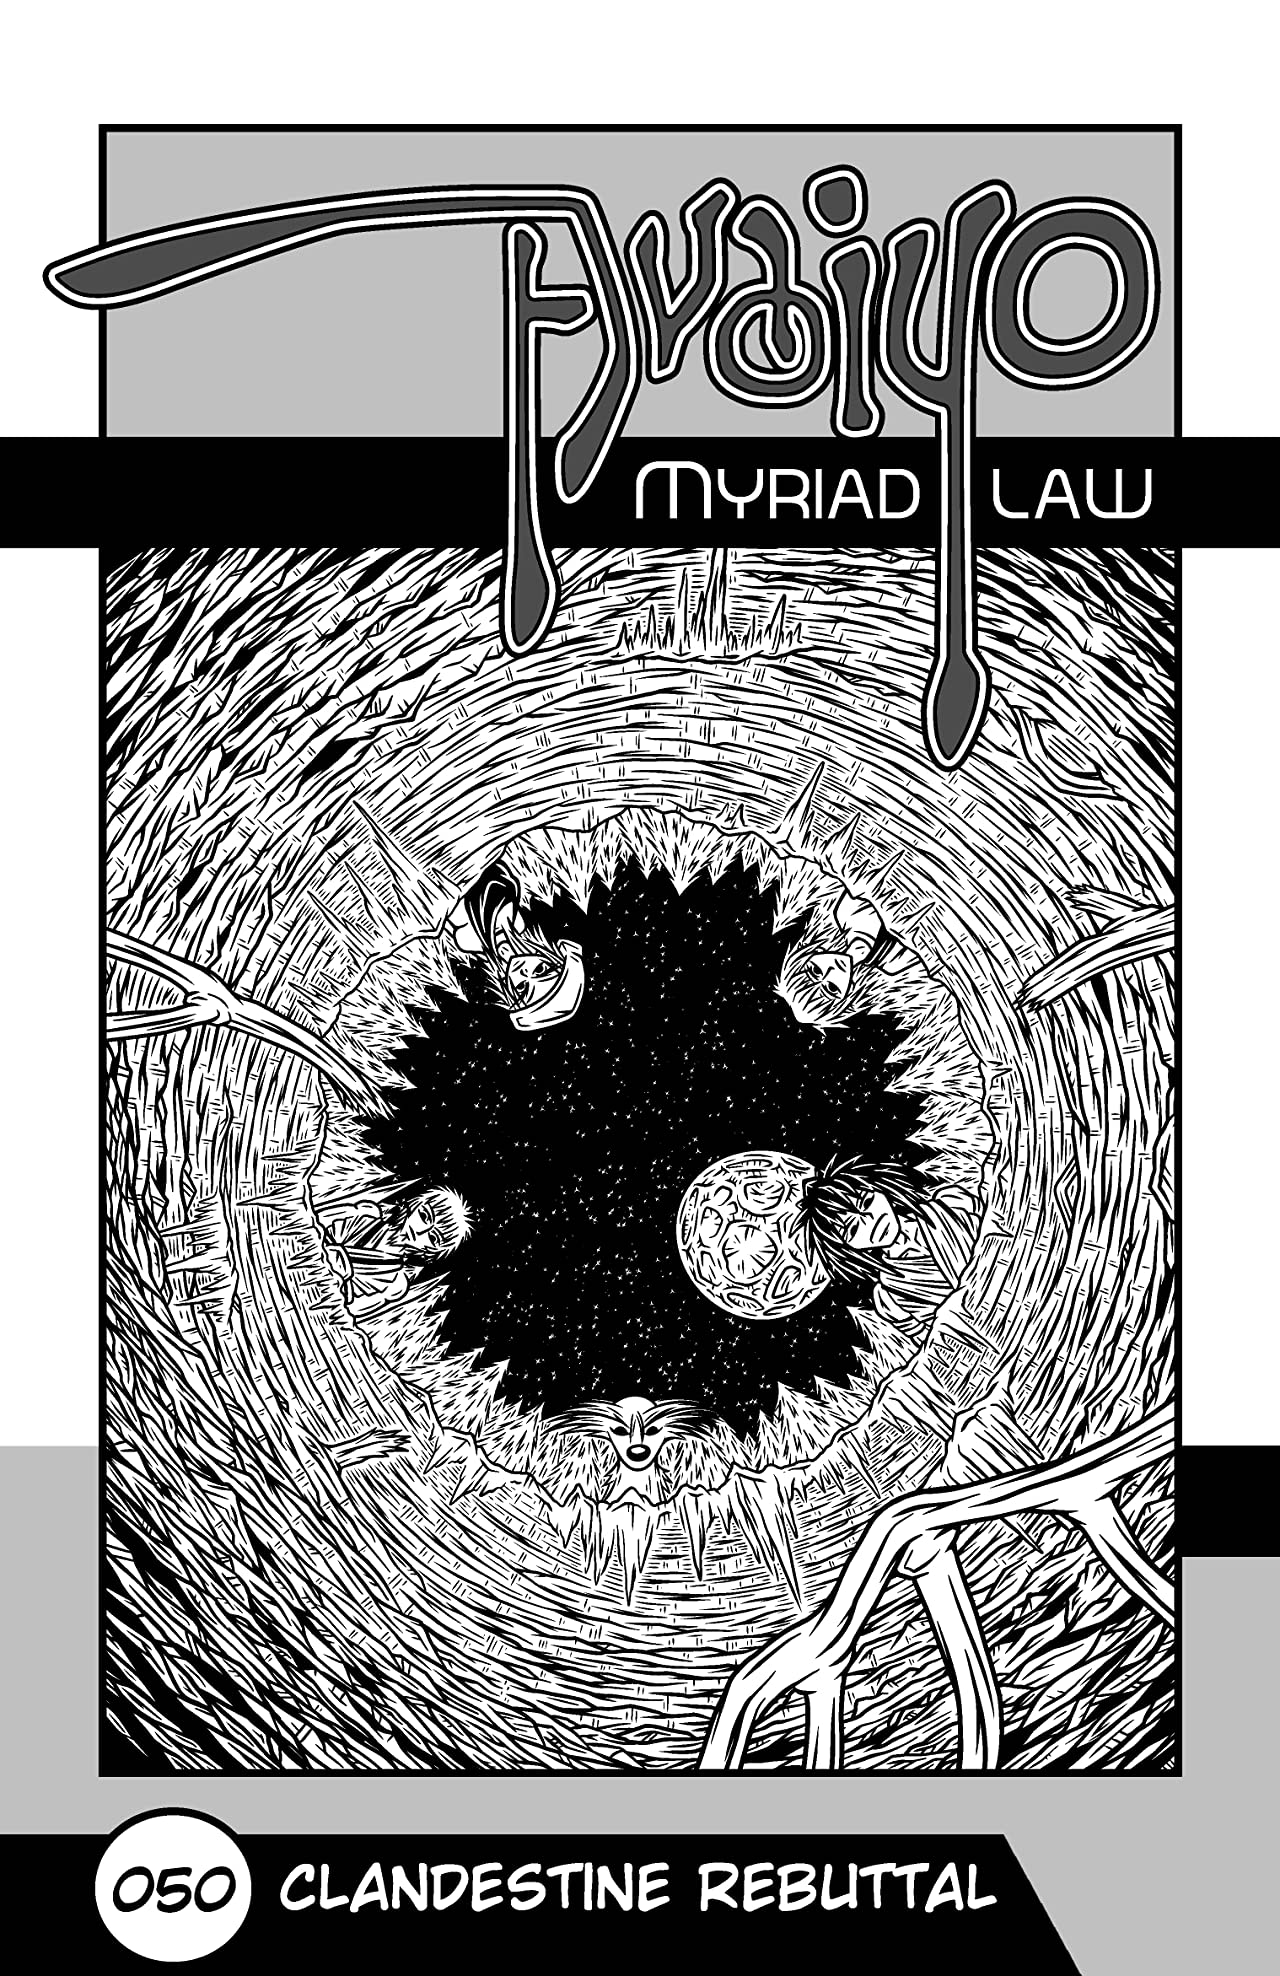 Avaiyo: Myriad Law #050